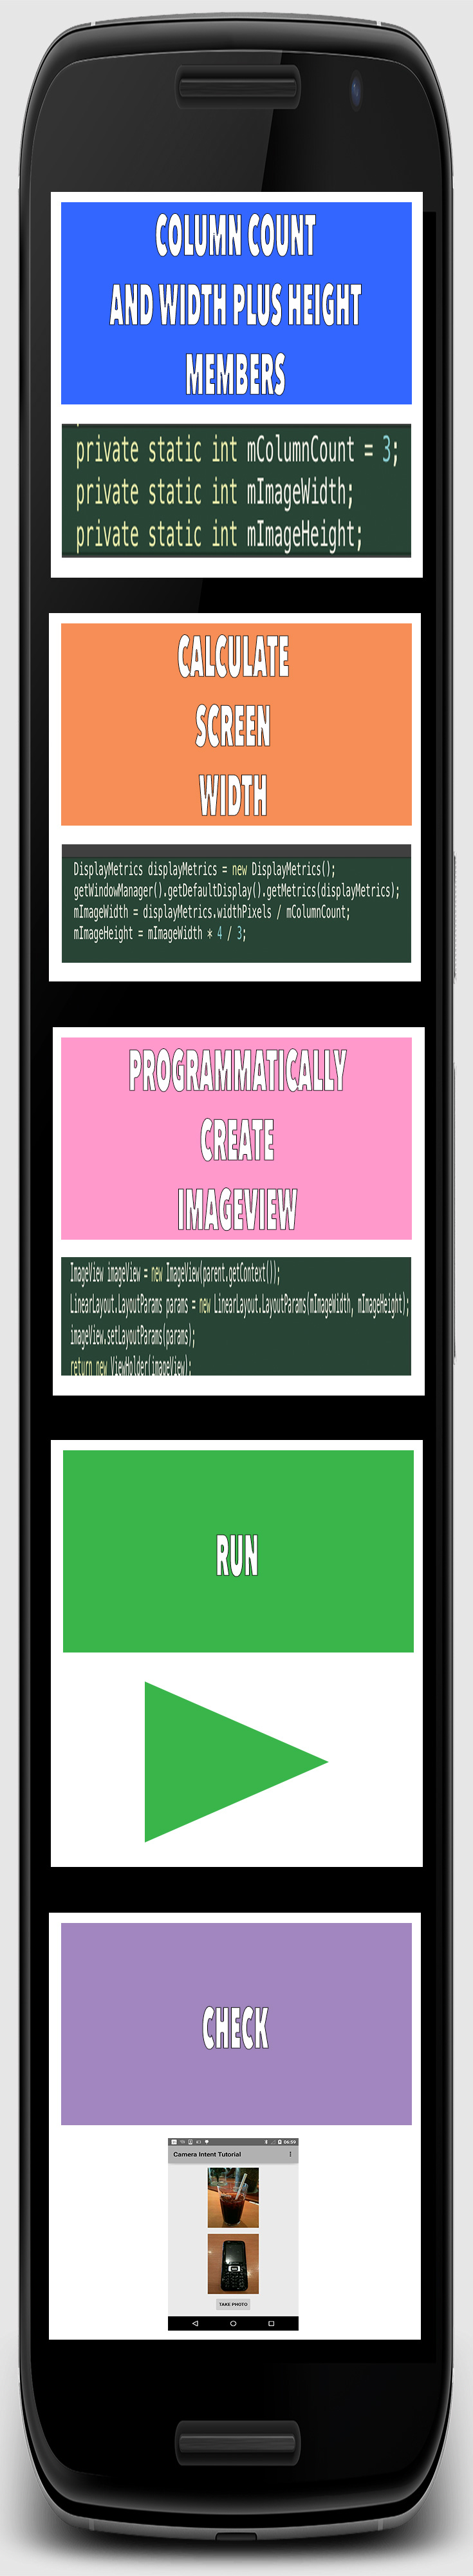 android recyclerview multi-column gallery | Android app performance